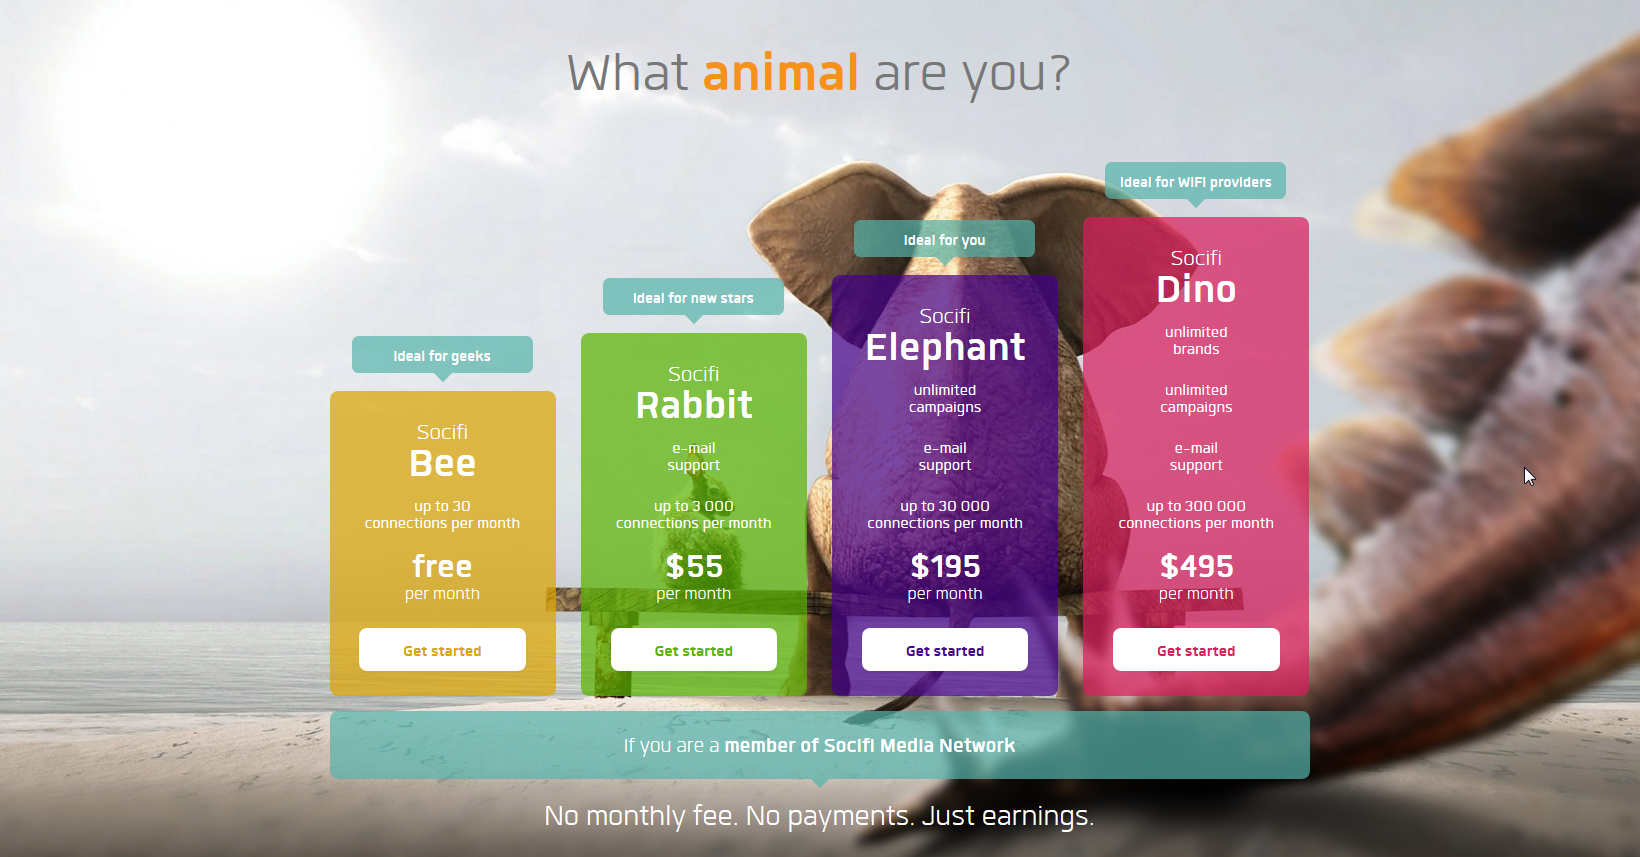 Great pricing table, the bigger the plan the bigger the box, also nice uses of colour & imagery.